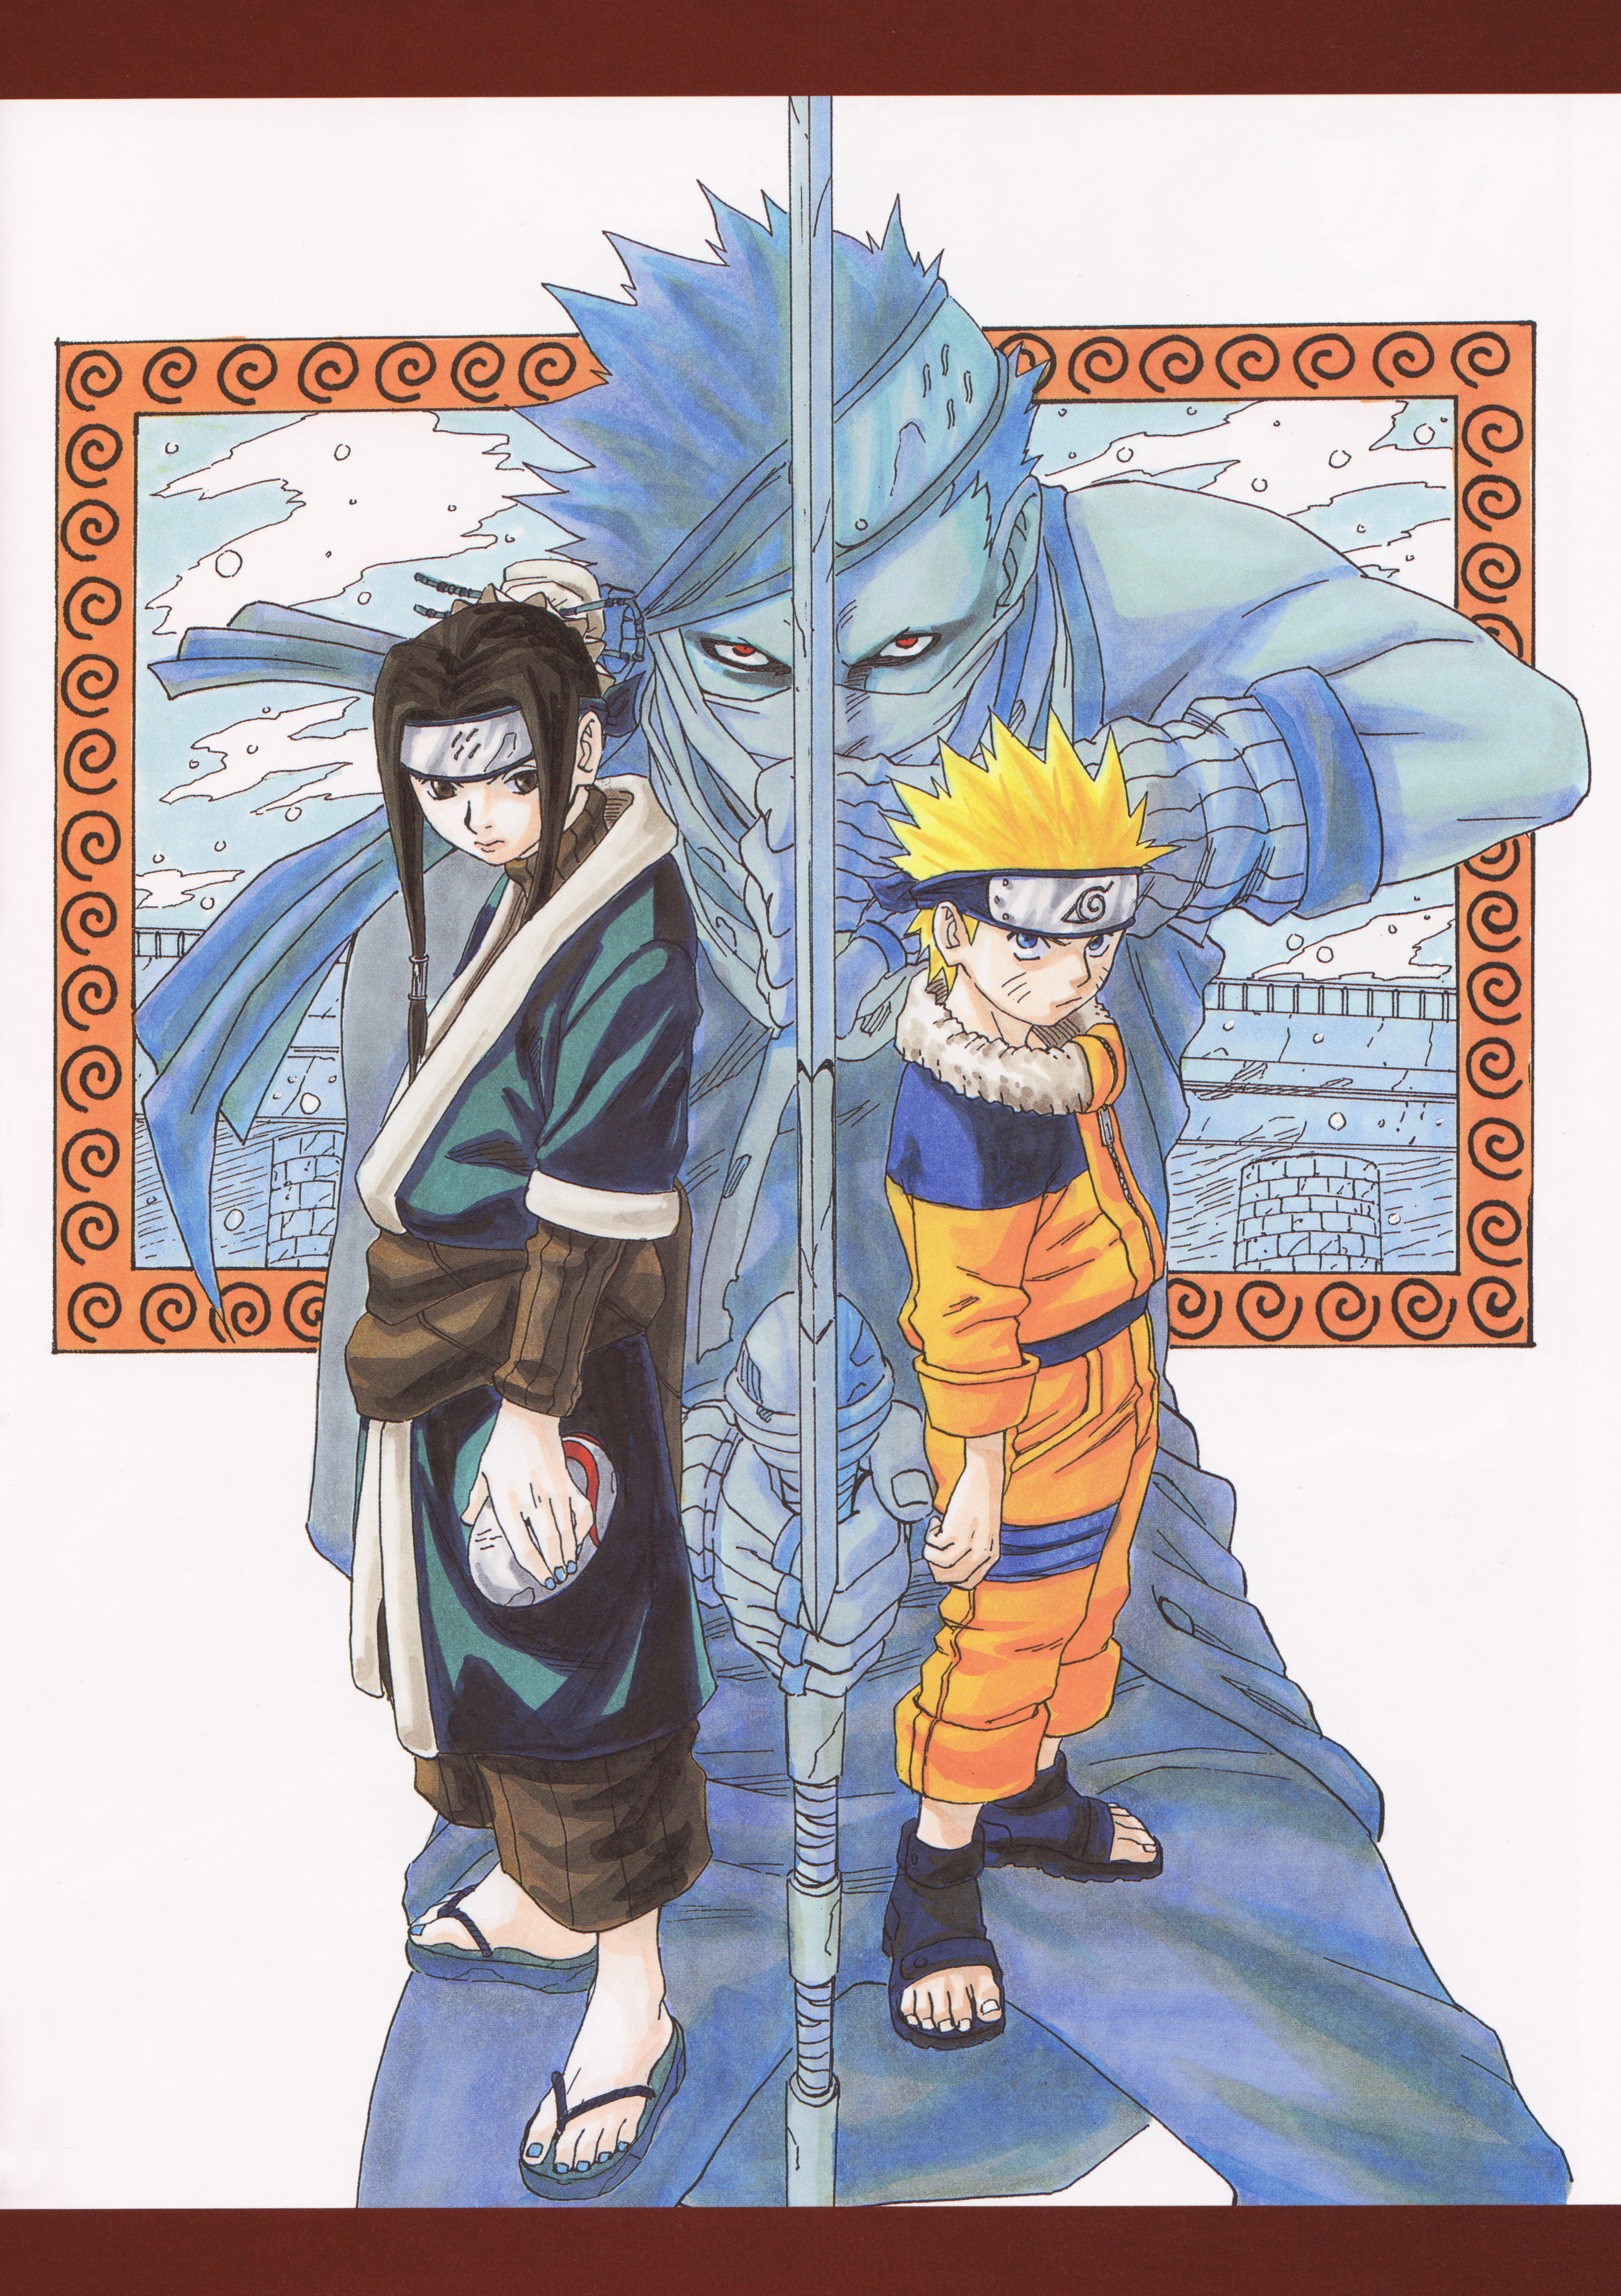 Zabuza in the Background with Naruto and Haku Up-front